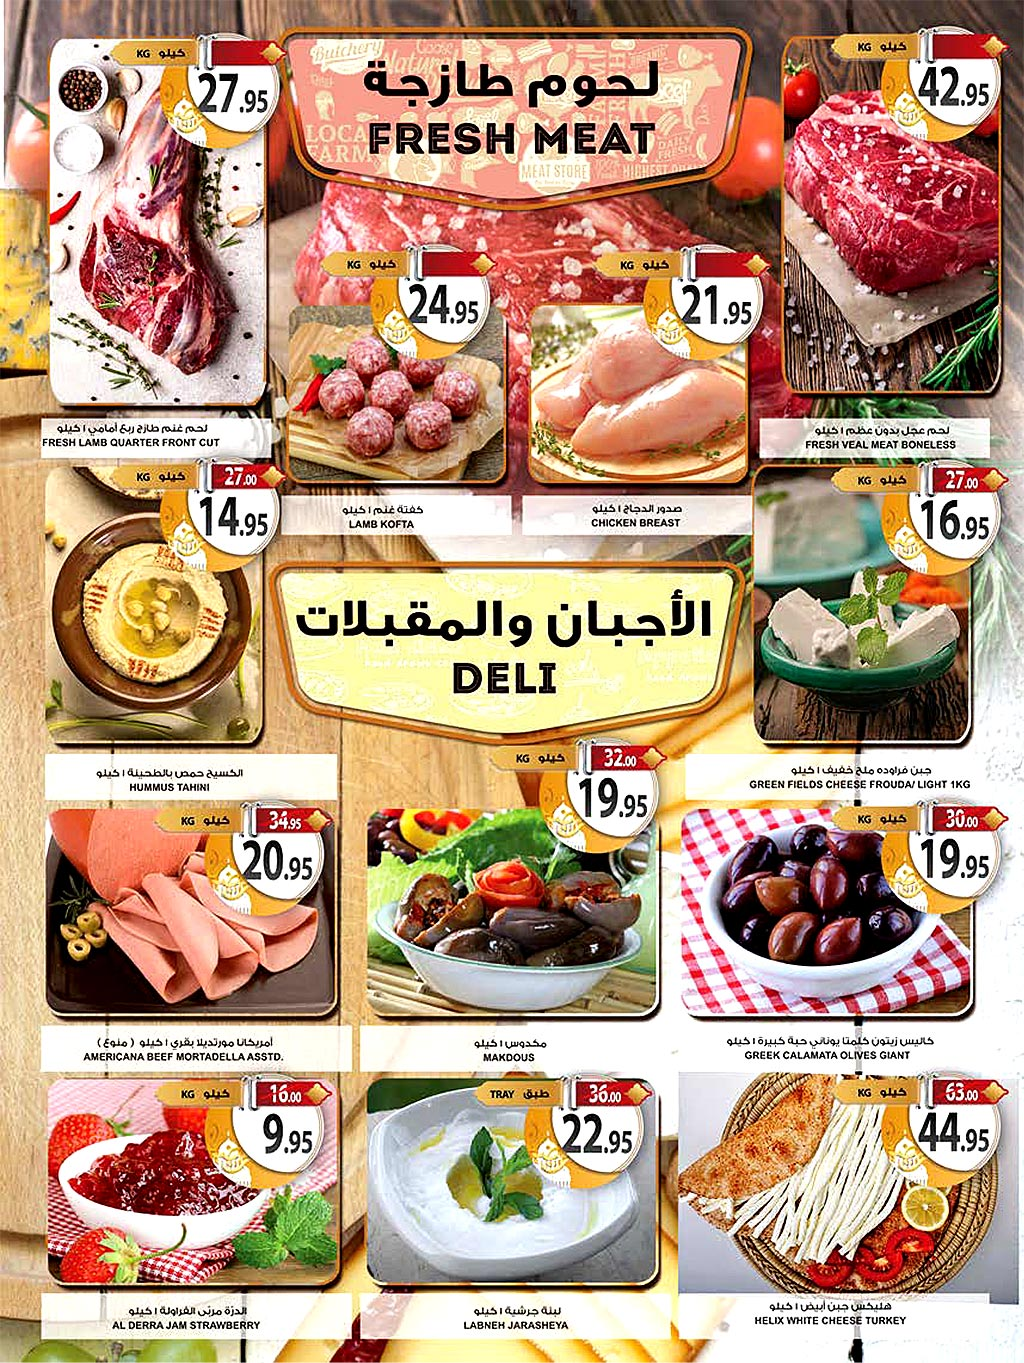 farm offers from 16may to 23may 2019 page number 2 عروض أسواق المزرعة من 16 مايو حتى 23 مايو 2019 صفحة رقم 2